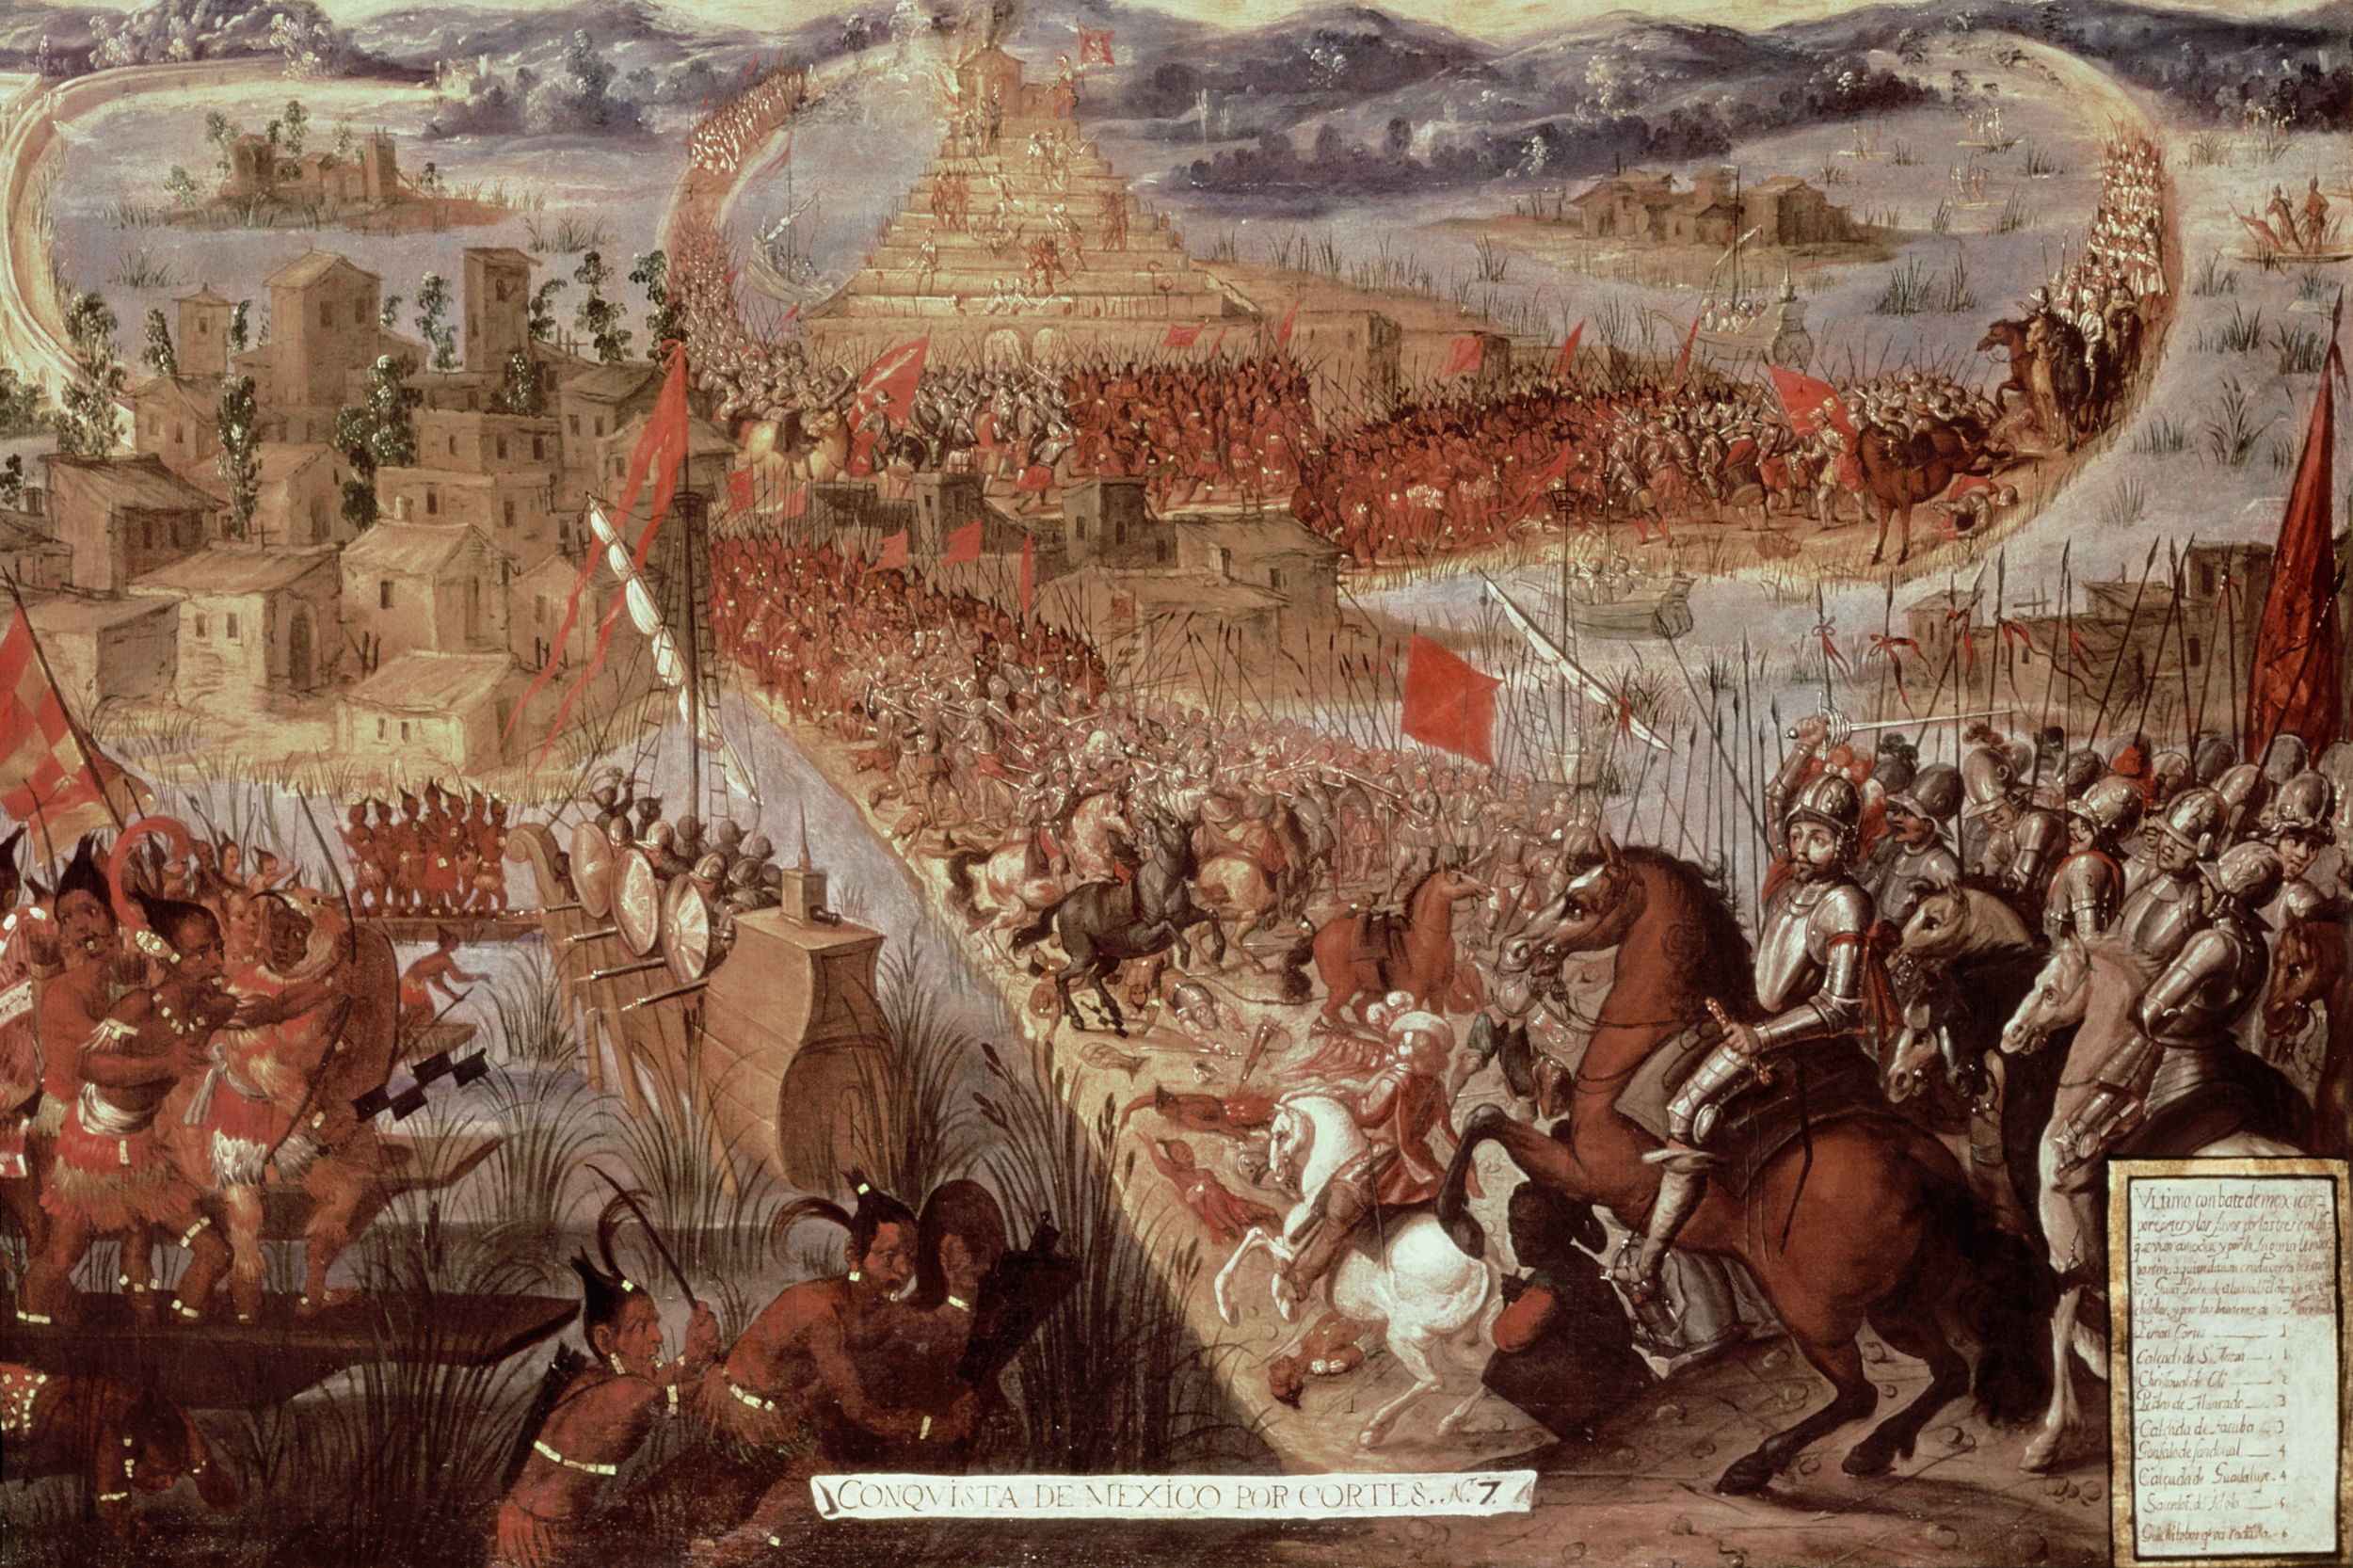 500 years later, Mexico still struggles with 'uneasy truths' about the Spanish conquest